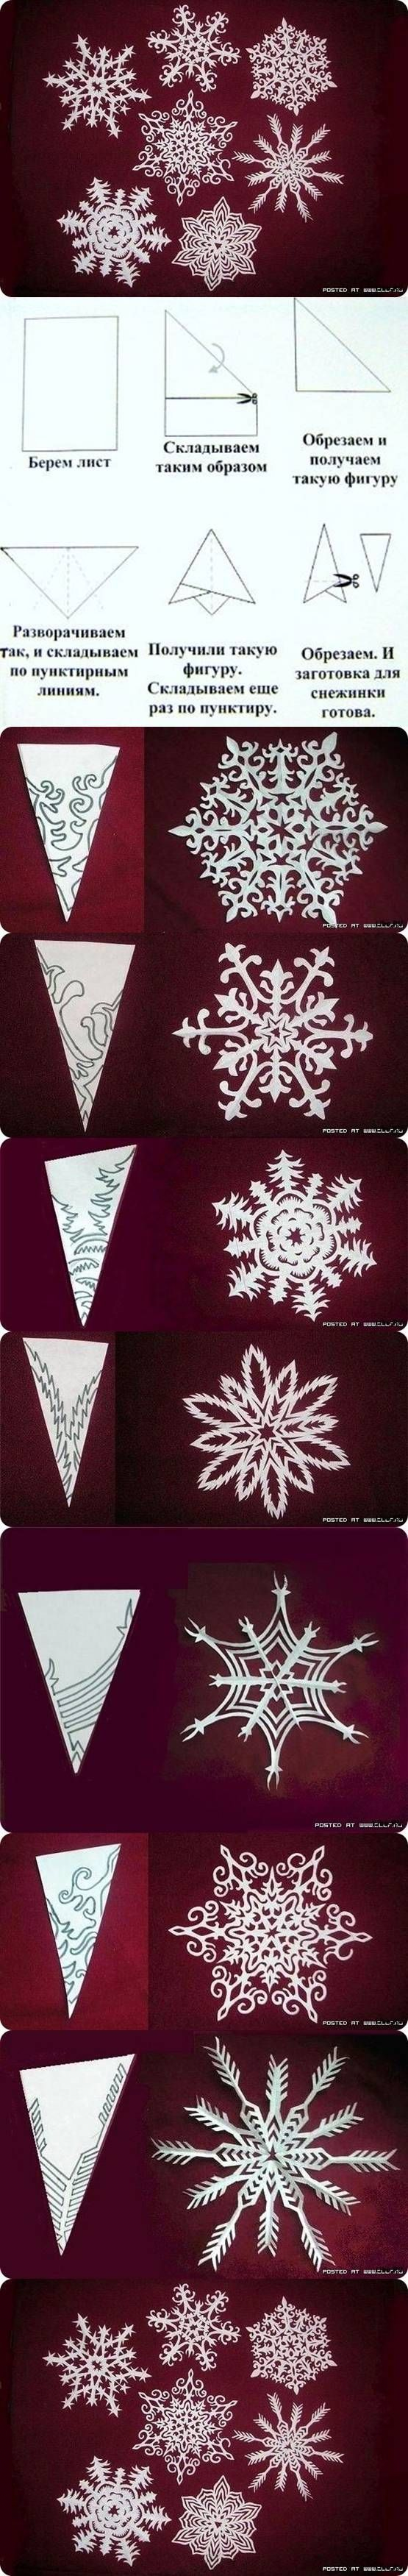 DIY Snowflakes of Paper- I just did it and it actually looks good!